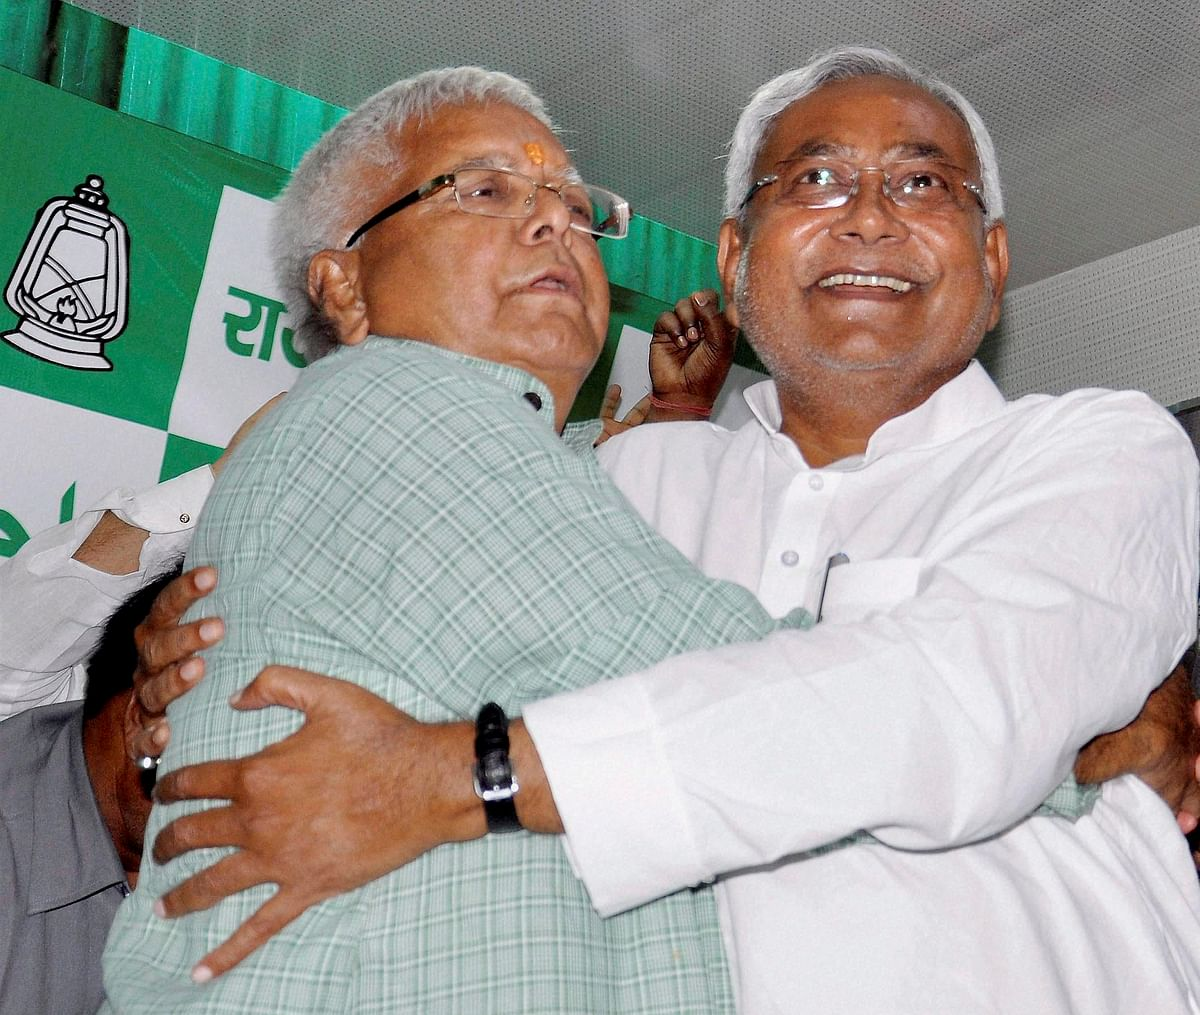 Bihar Chief Minister Nitish Kumar and RJD chief Lalu Prasad hug each other after Mahagathbandhan?s (Grand Alliance) victory in Bihar assembly elections at RJD office in Patna. (Photo: PTI)